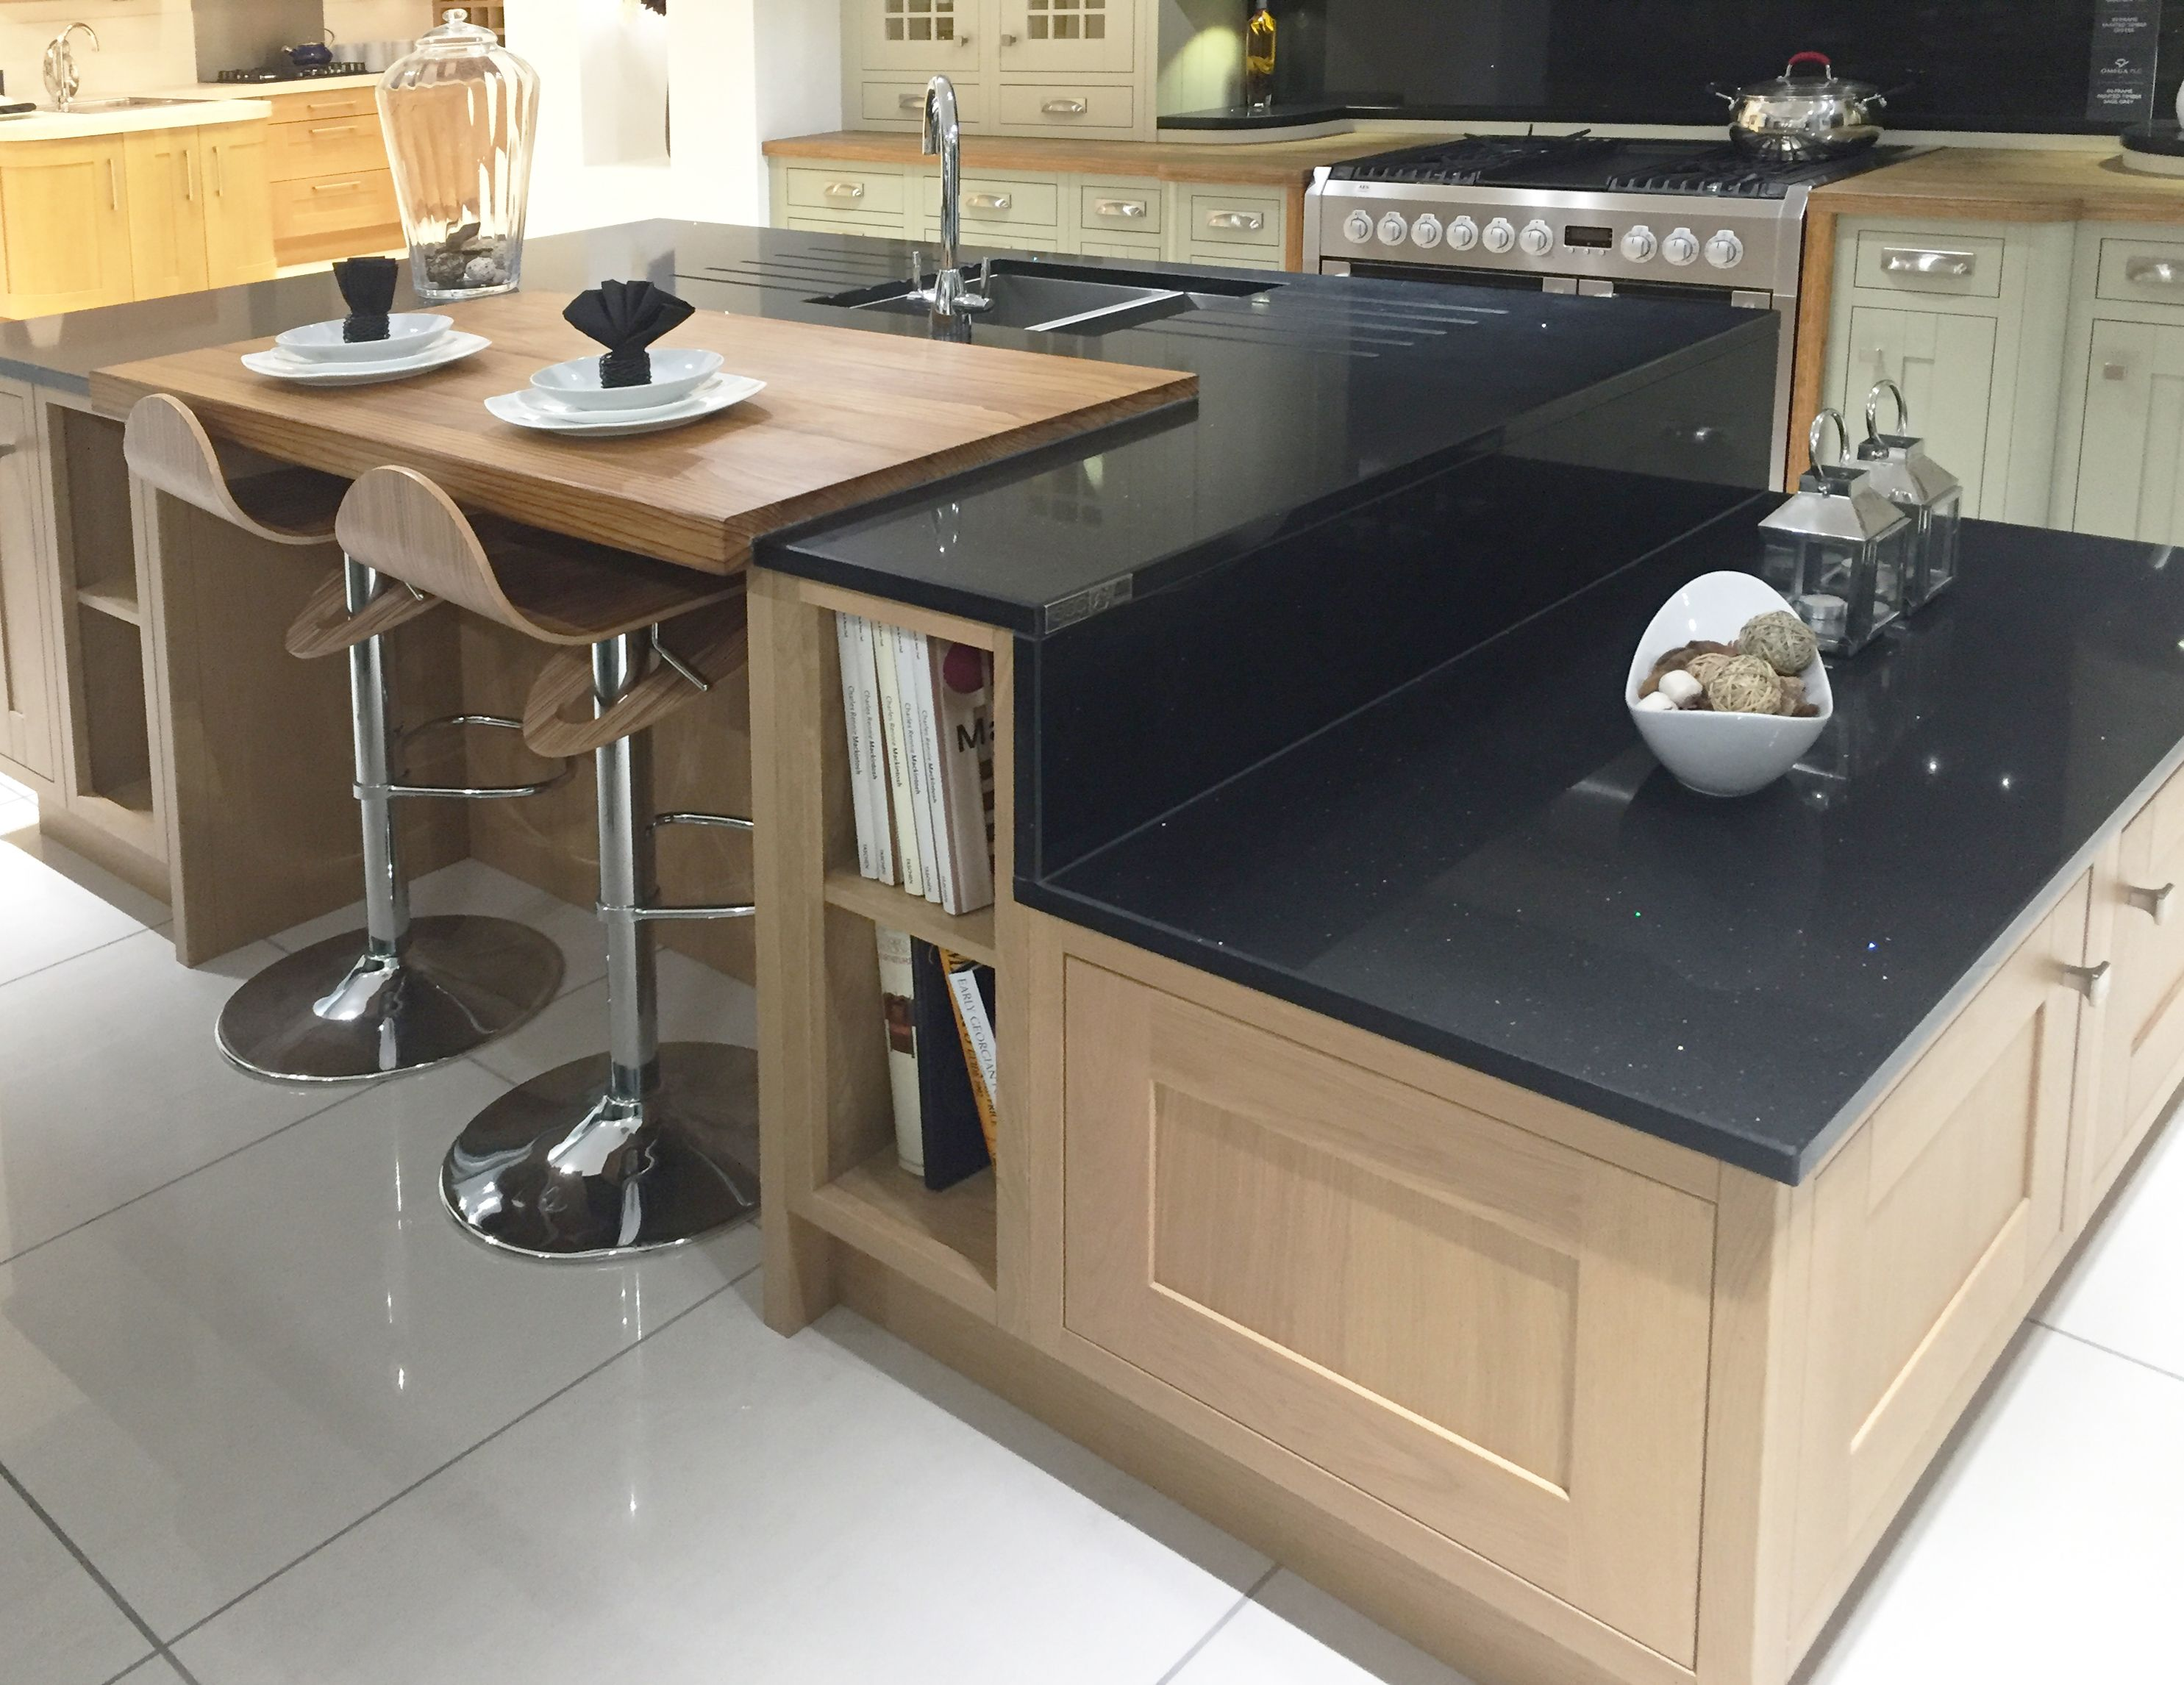 Contemporary kitchen island design in Lissa Oak with split level